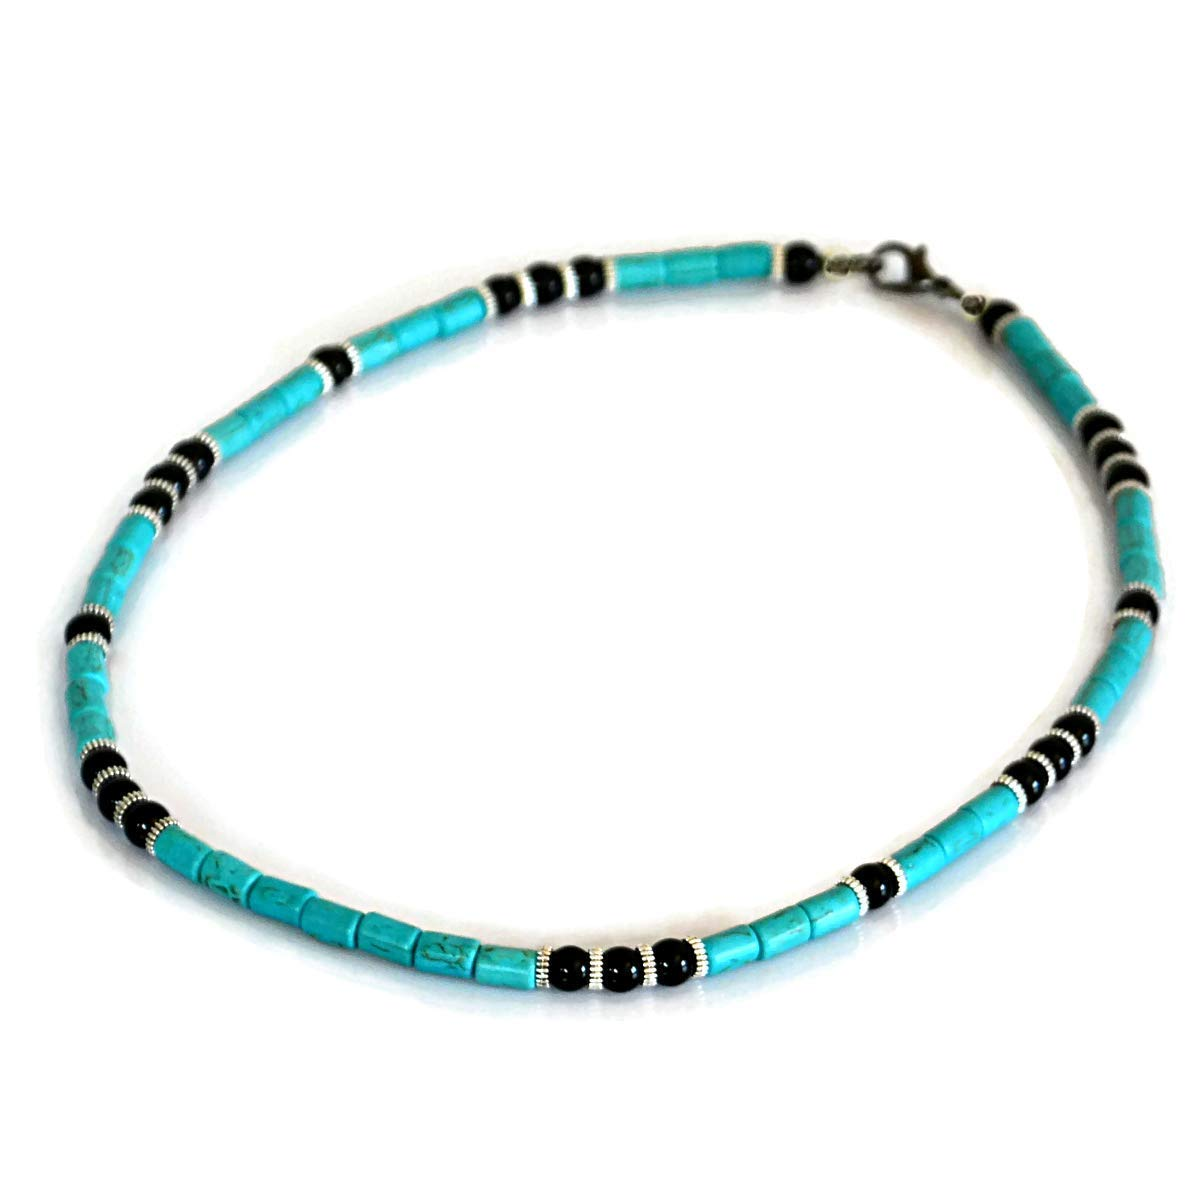 free shipping Handmade Sales for sale Surfer Gemstone Native Men's Inspired Necklace American